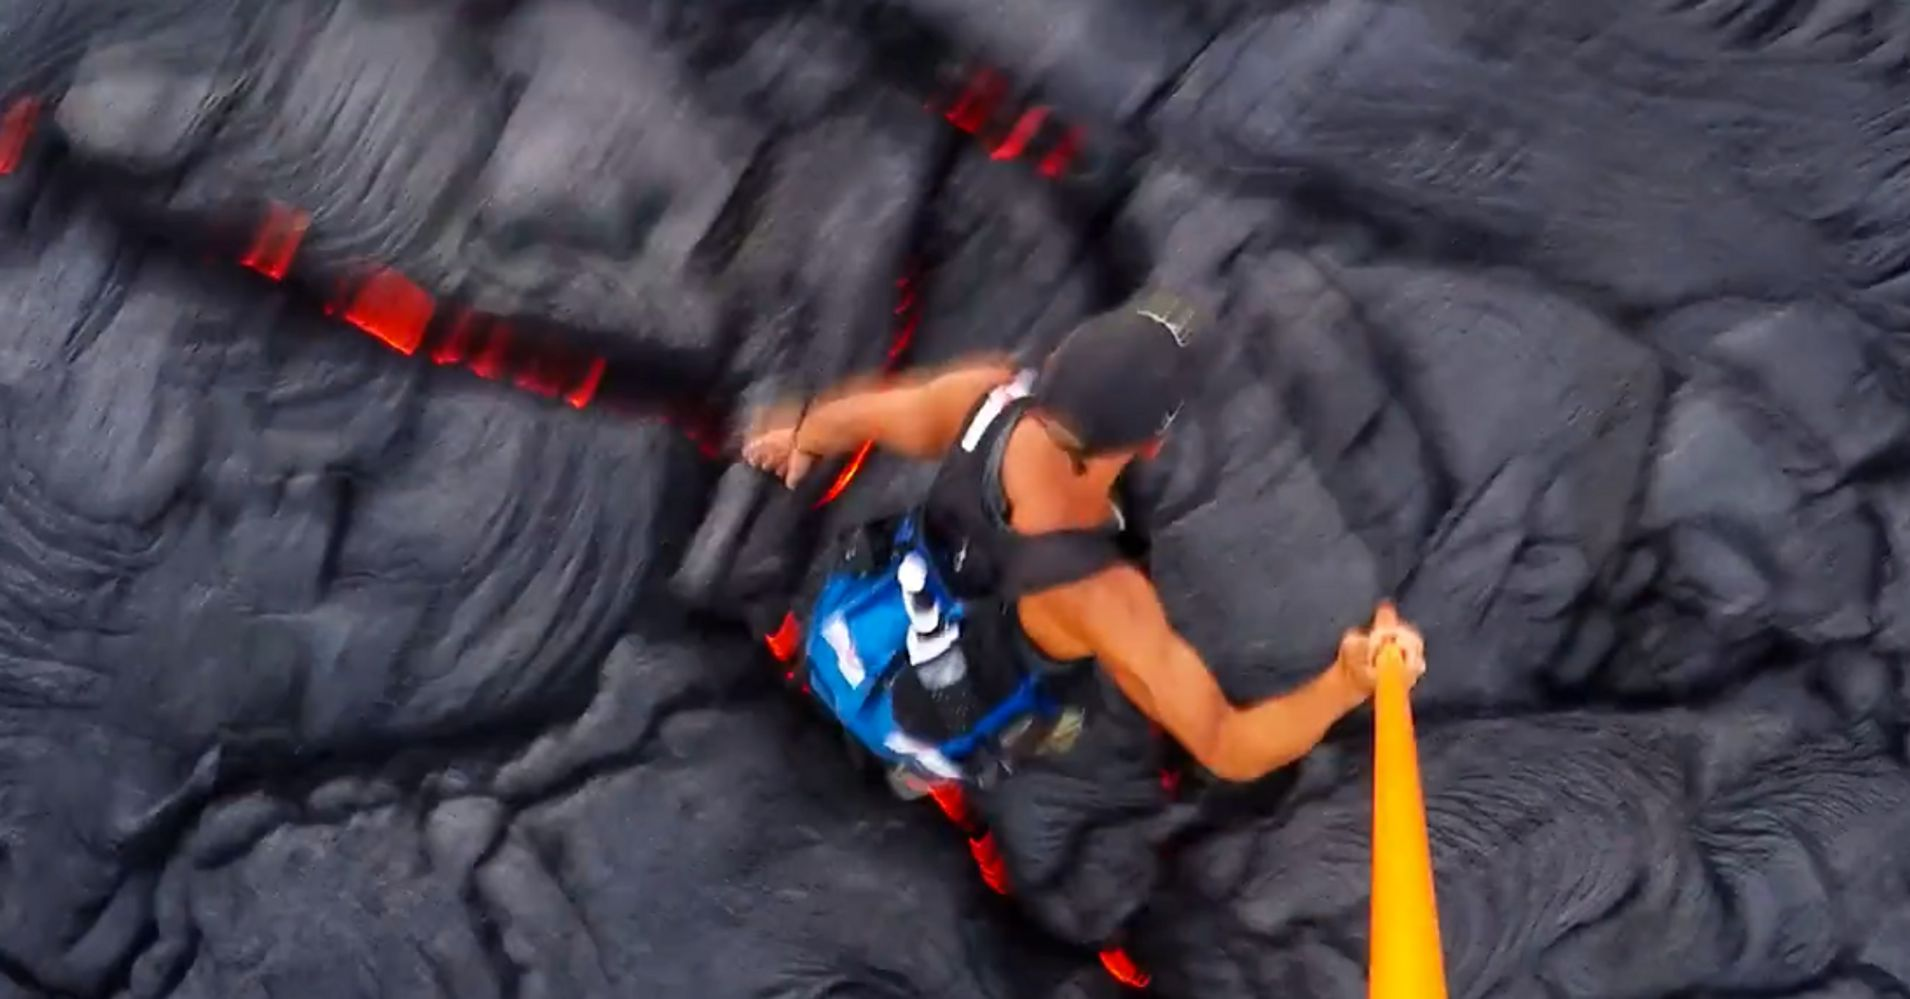 Watch A Man Run Through A Scorching Lava Field And Try Not To Wince